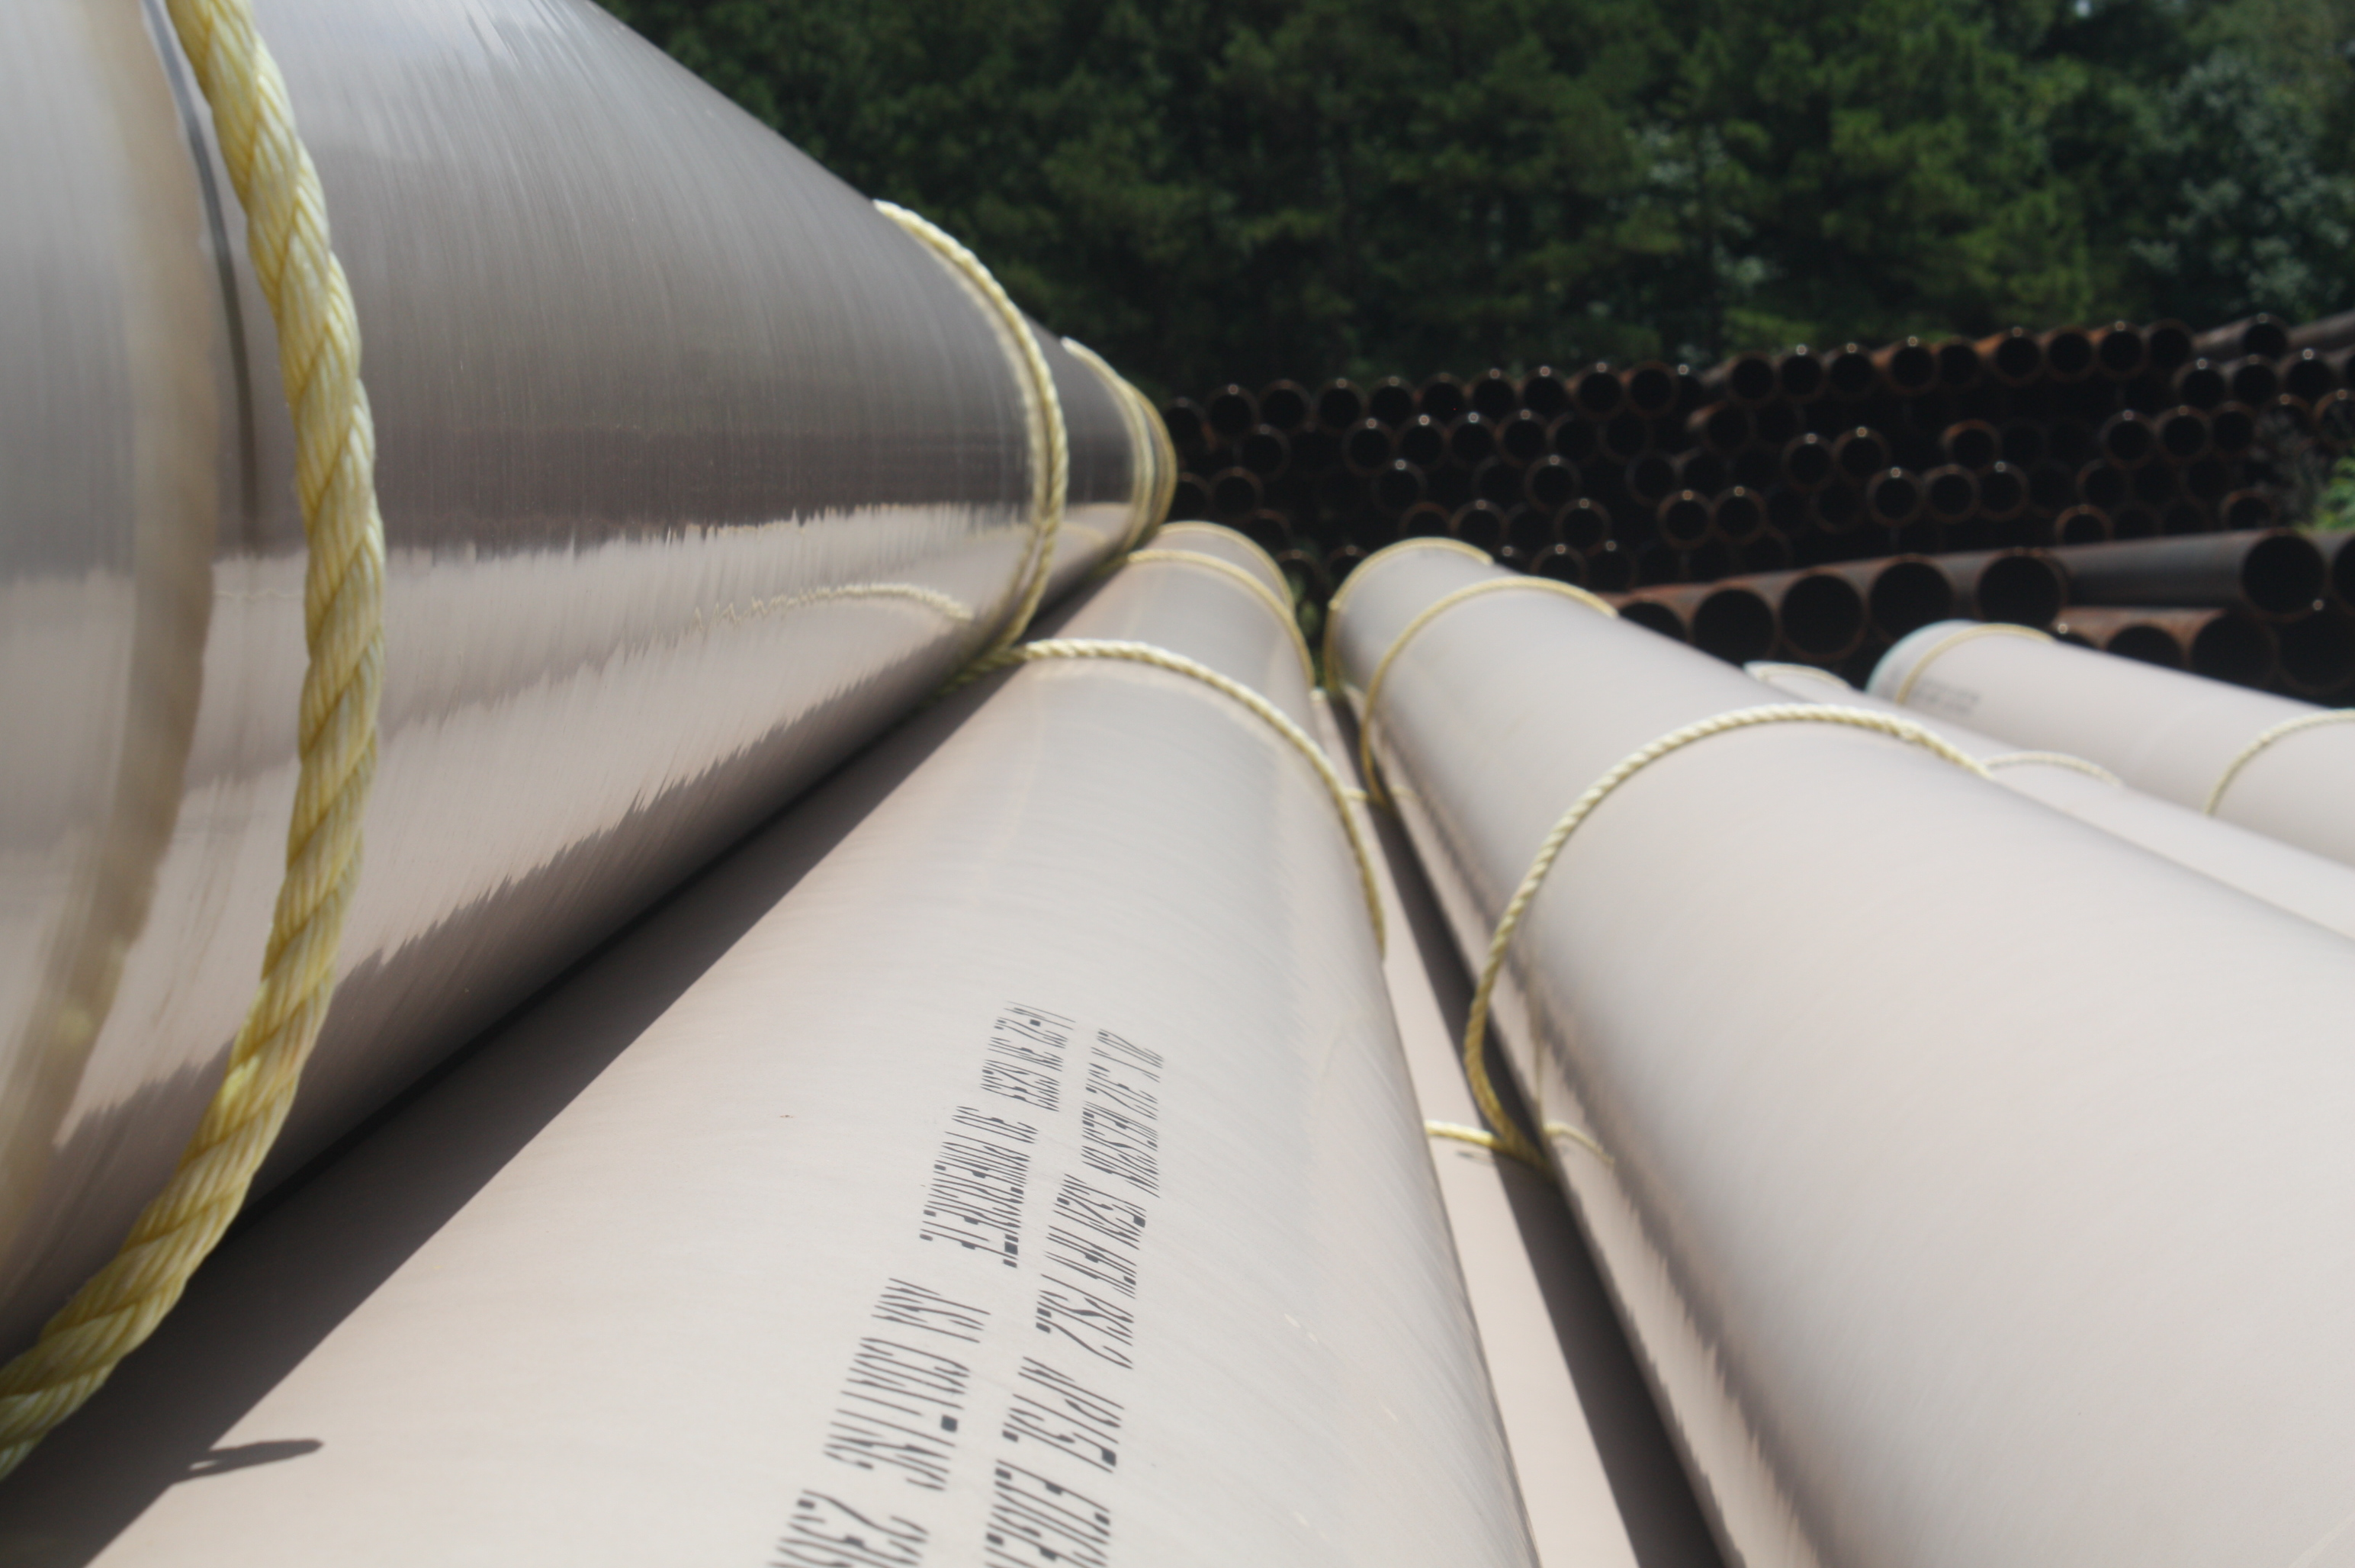 ARO Pipe Coating | A&A Coating Inc  - Request A Free Quote!